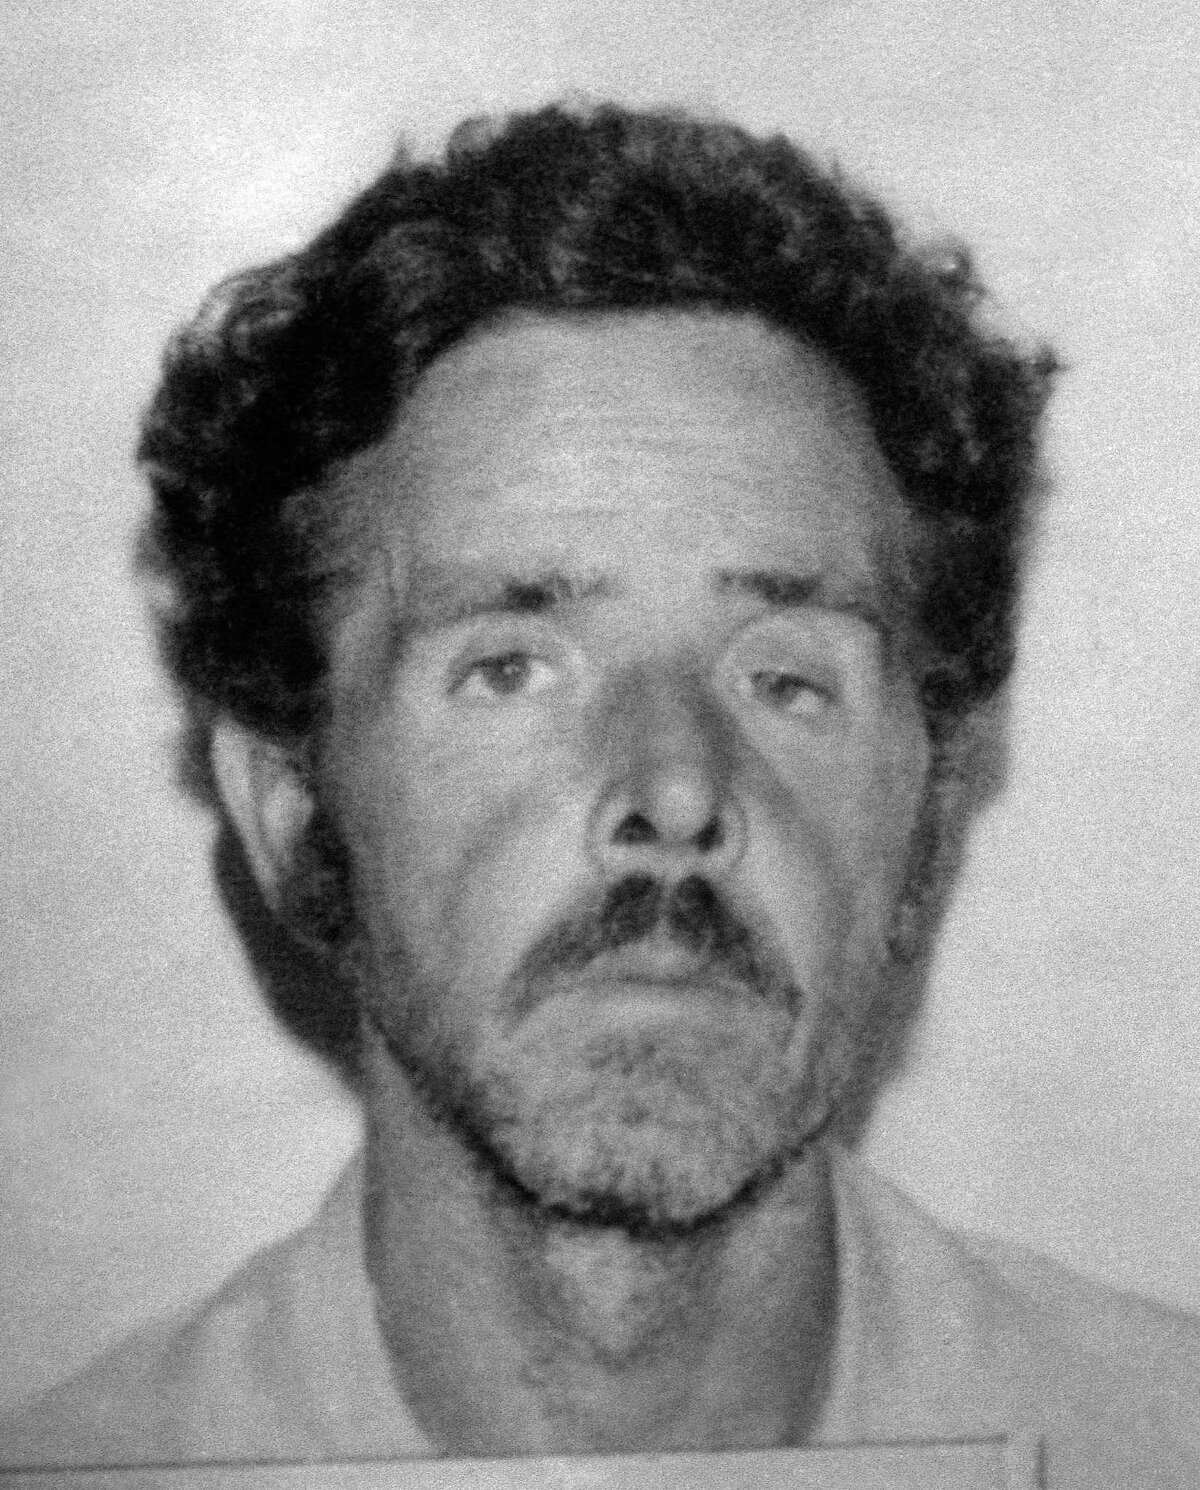 Name: Henry Lee Lucas Alias: The Confession KillerCrime: Lucas, a convicted murderer, claimed to have killed hundreds in Texas and across the U.S. He was later convicted of murdering 11 people. Status: Lucas died in prison in 2001 from natural causes